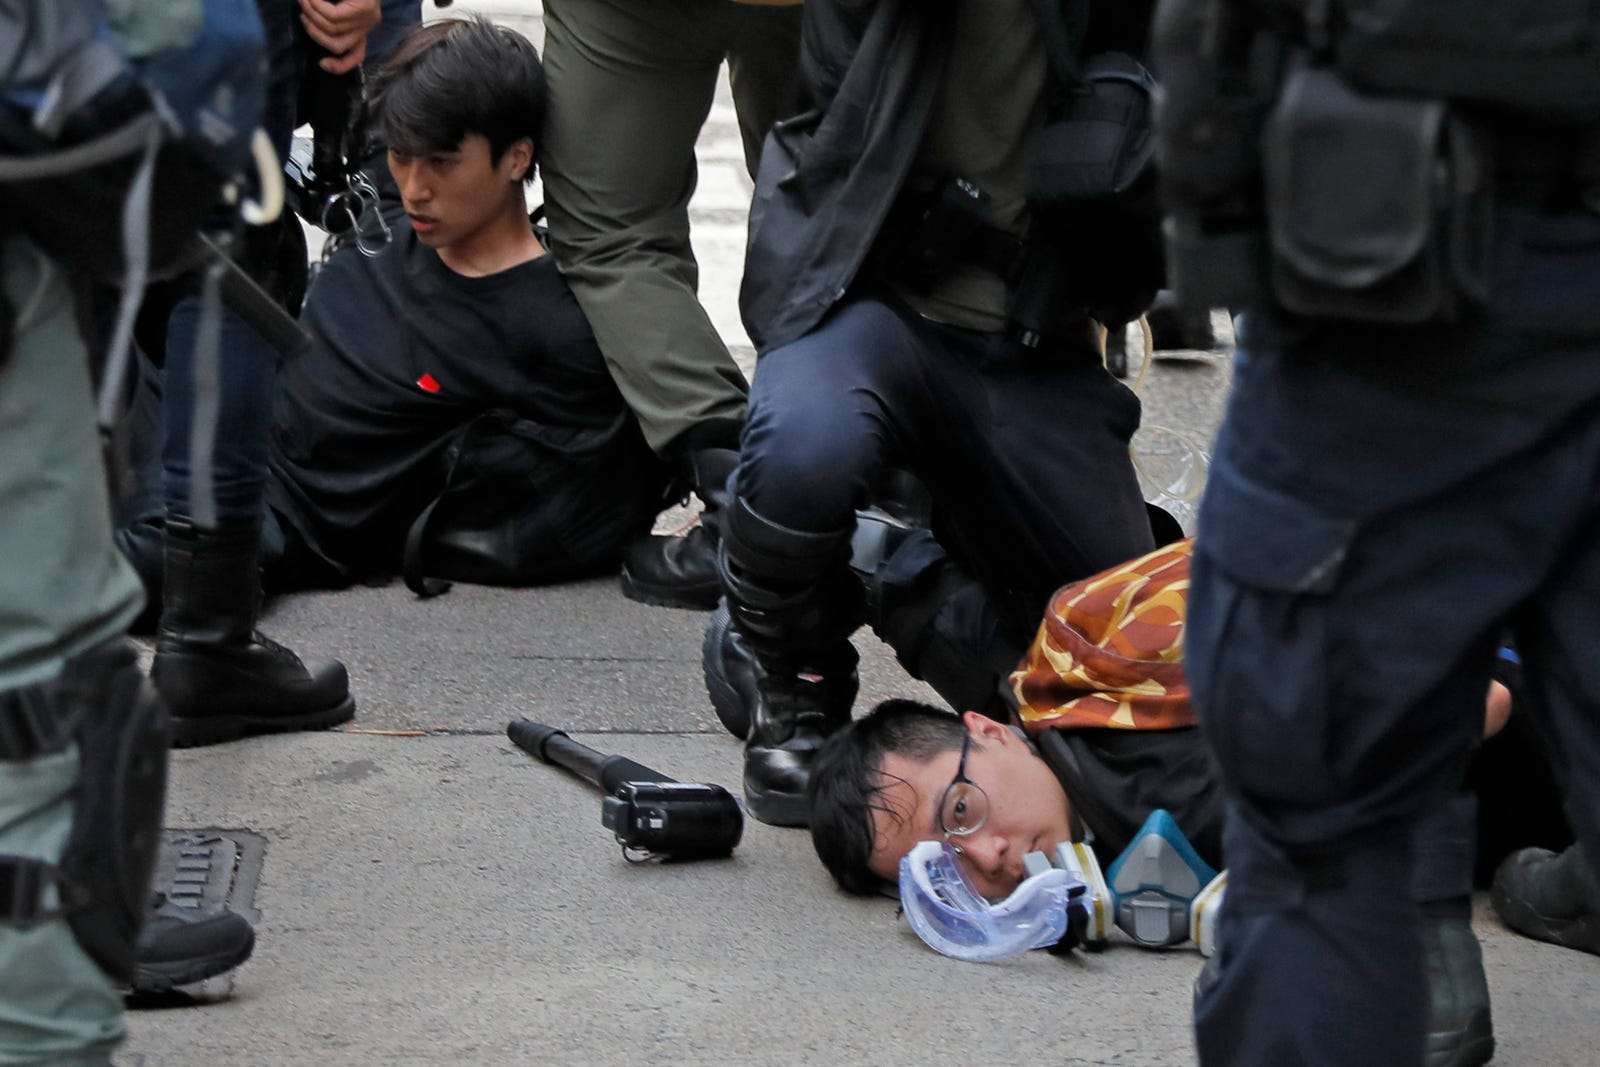 Protesters are detained by riot policemen during the anti-extradition bill protest in Hong Kong, Sunday, Aug. 11, 2019.